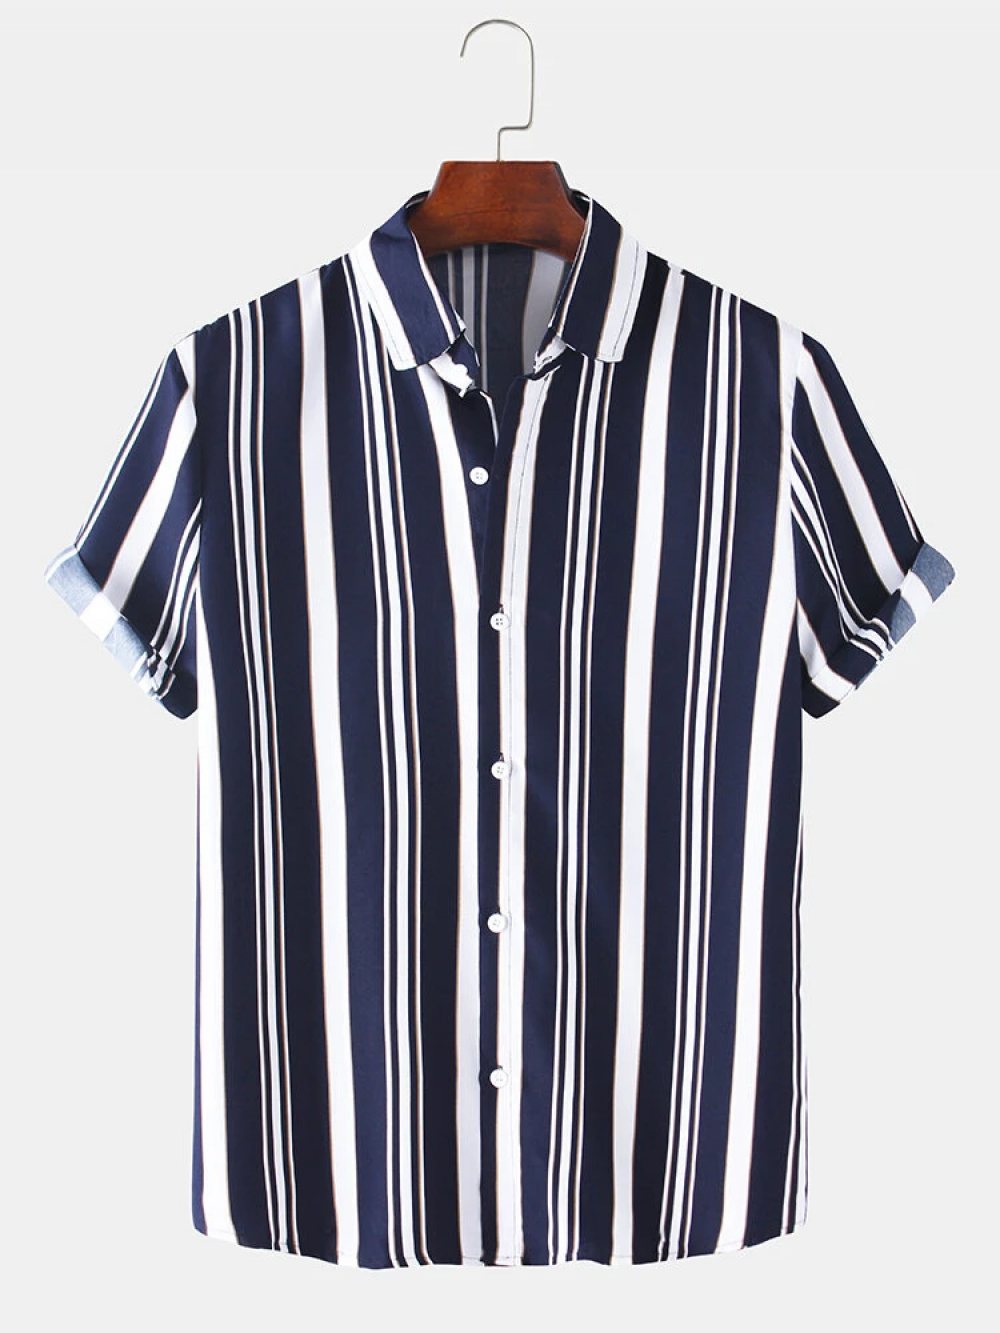 Fabulous Black and White Revere Collar Cotton Vertical Striped Shirt